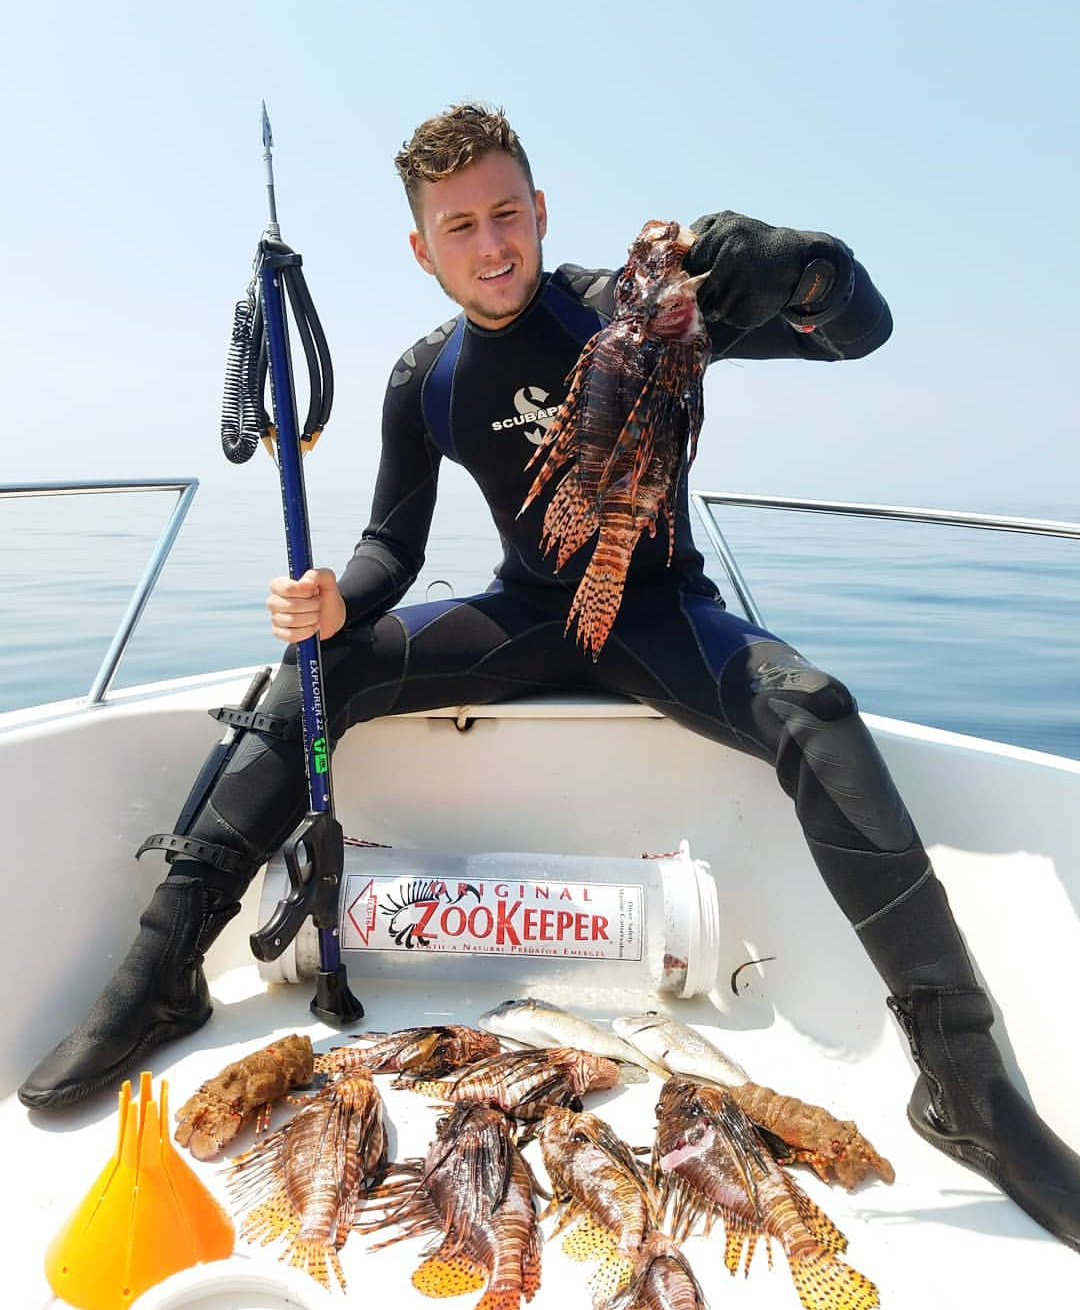 With a ZooKeeper lionfish containment unit by his side, lionfish hunter Tristan Lennard shows off his haul from a recent dive – including this personal best 17-inch fish.